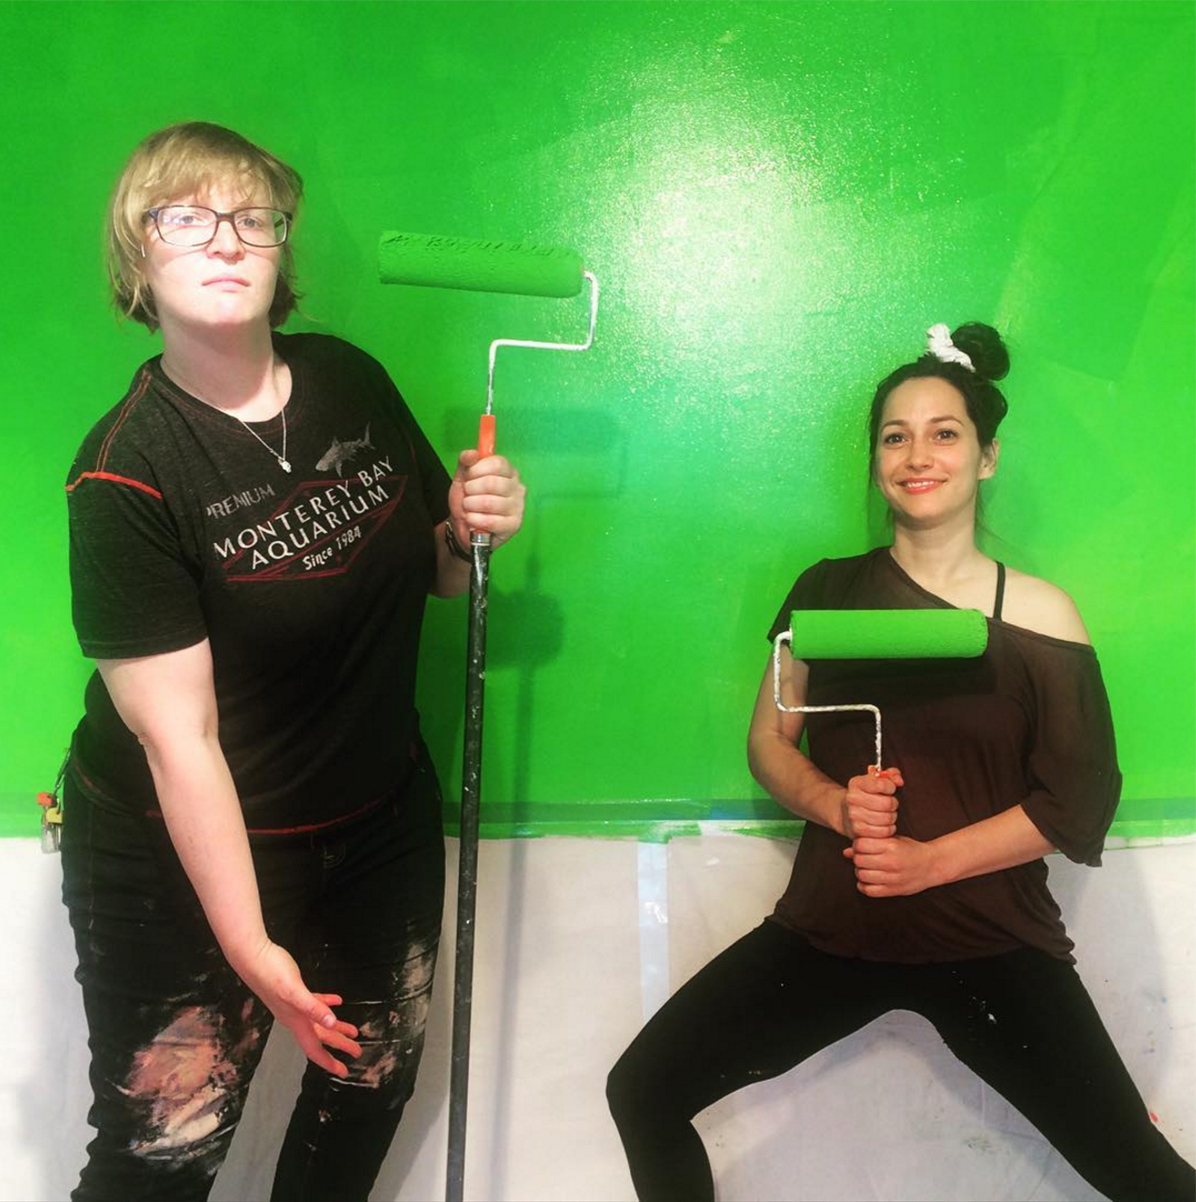 Artists Kate Rhoades and Carolyn Janssen turning a wall into a green screen at the new Royal Production Company.